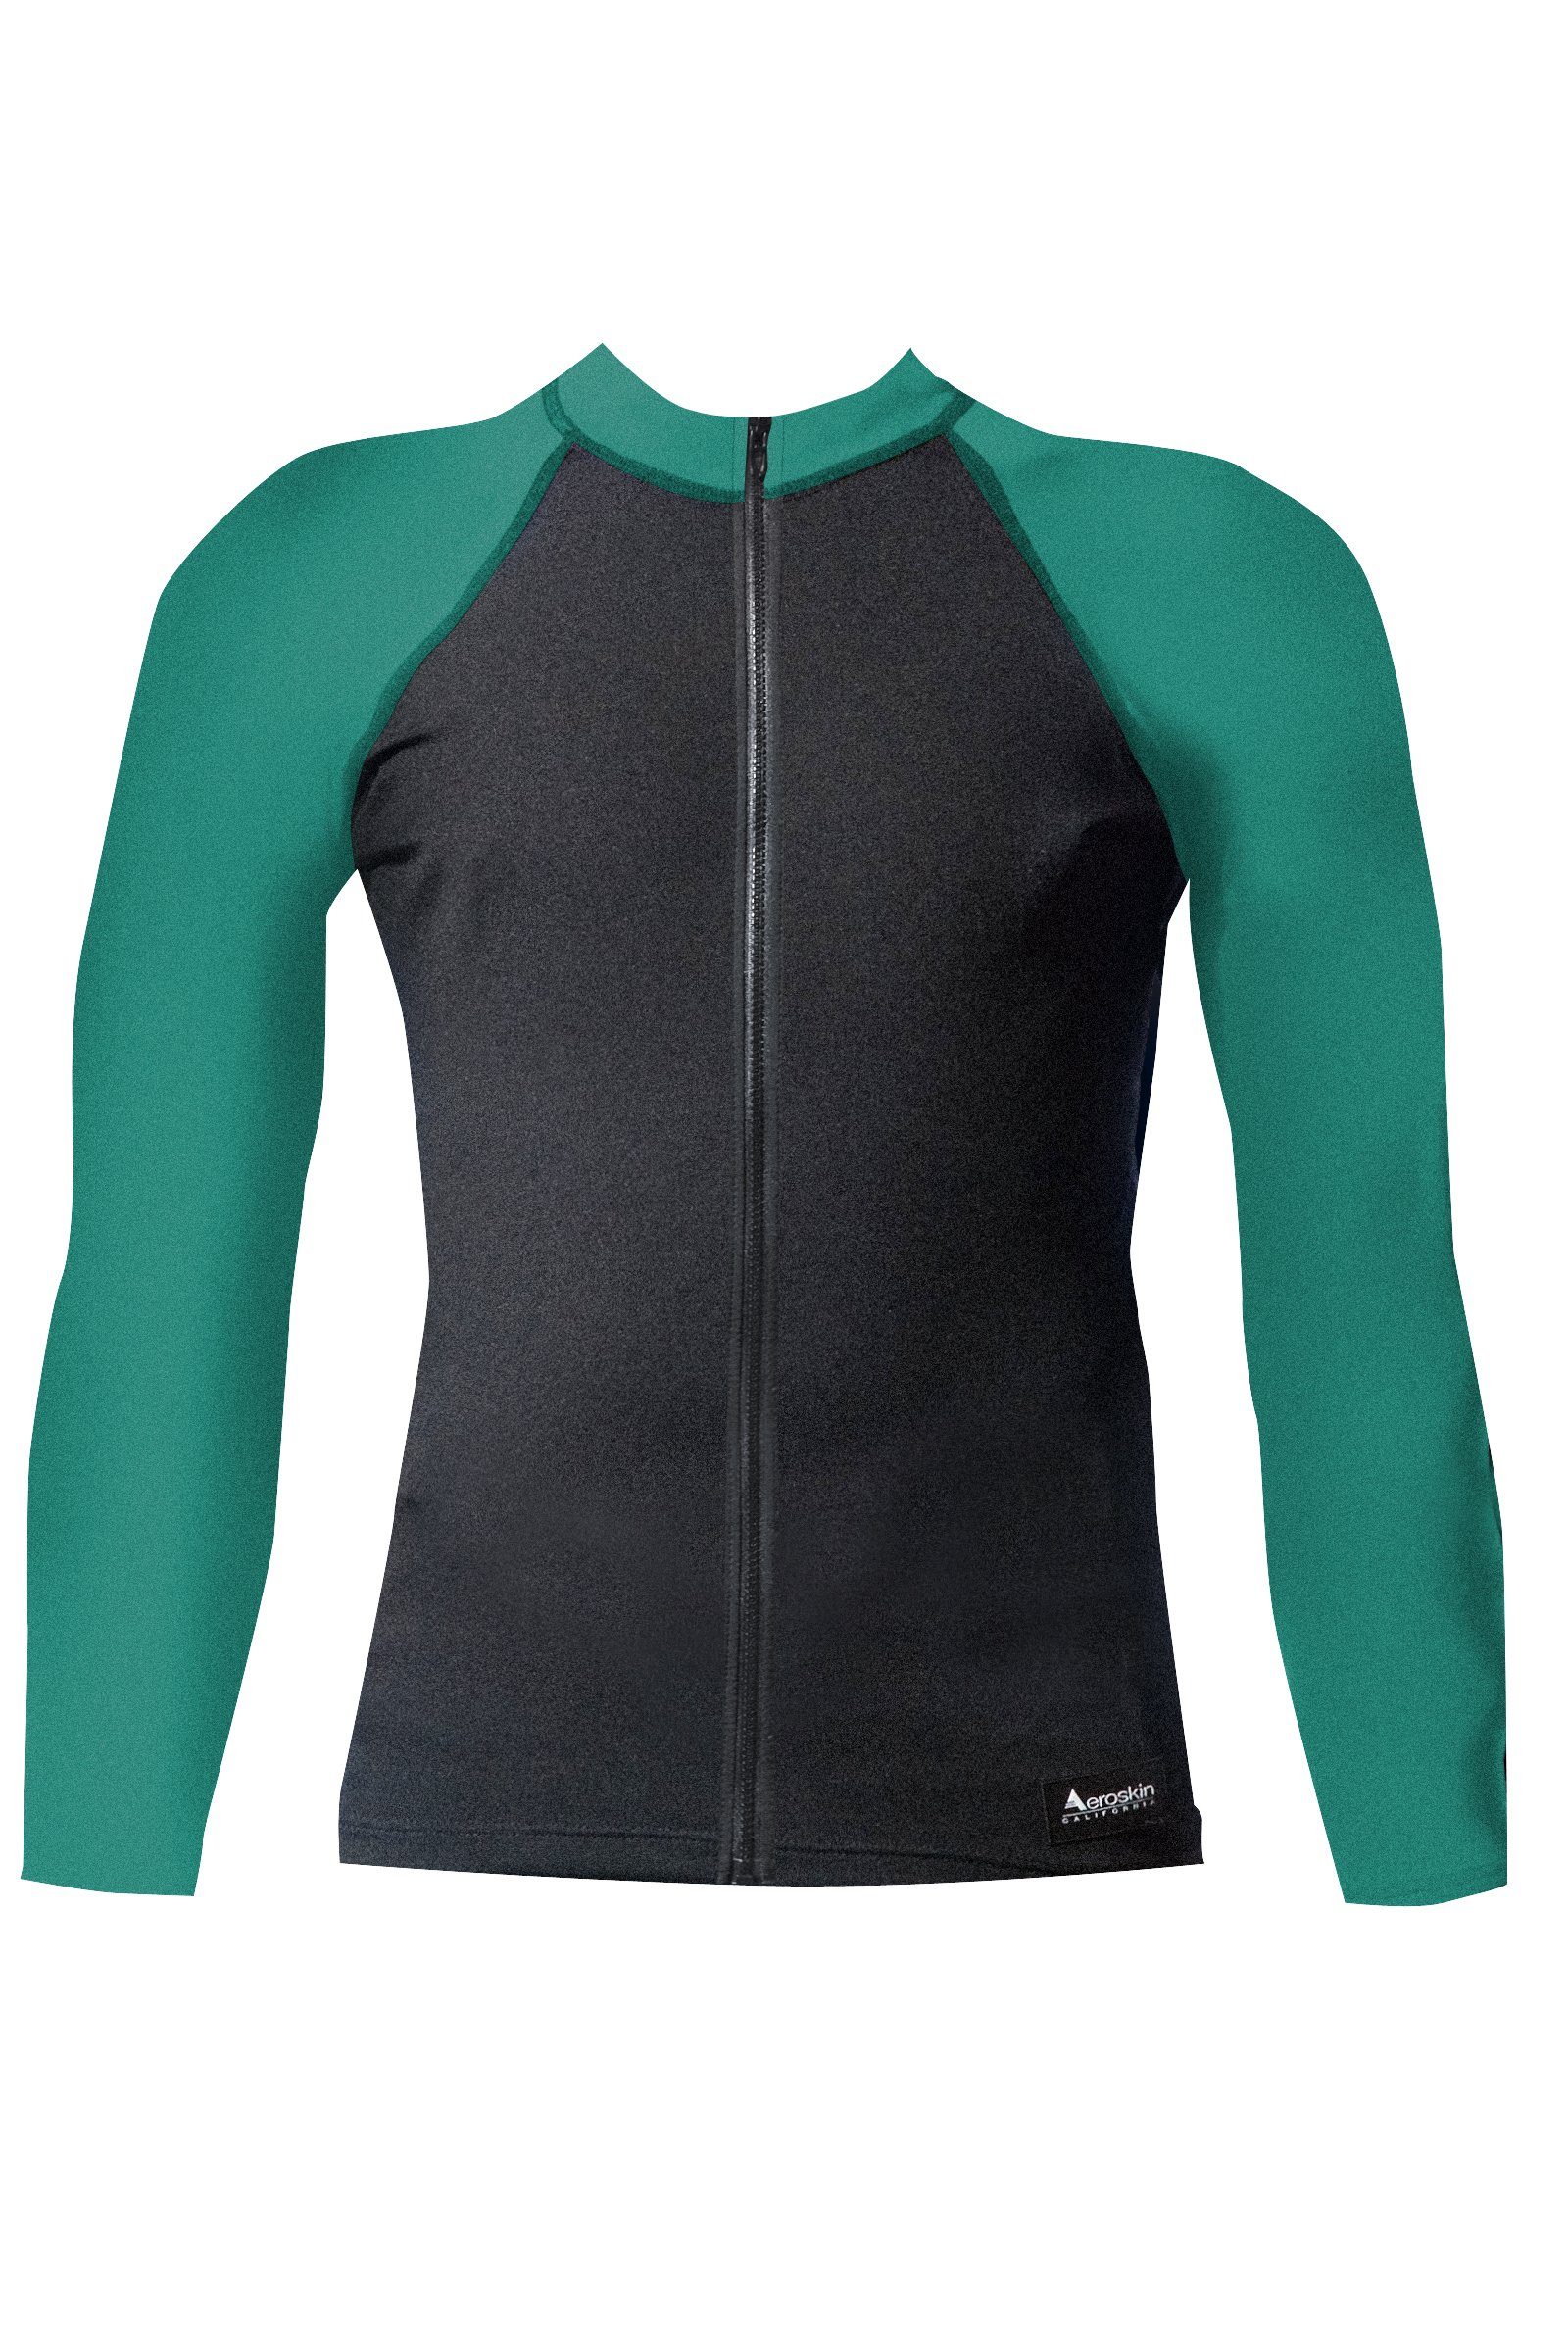 Aeroskin Raglan Long Sleeve Shirt with Color Accents, Fuzzy Collar and Front Zip (Black/Teal, X-Small)